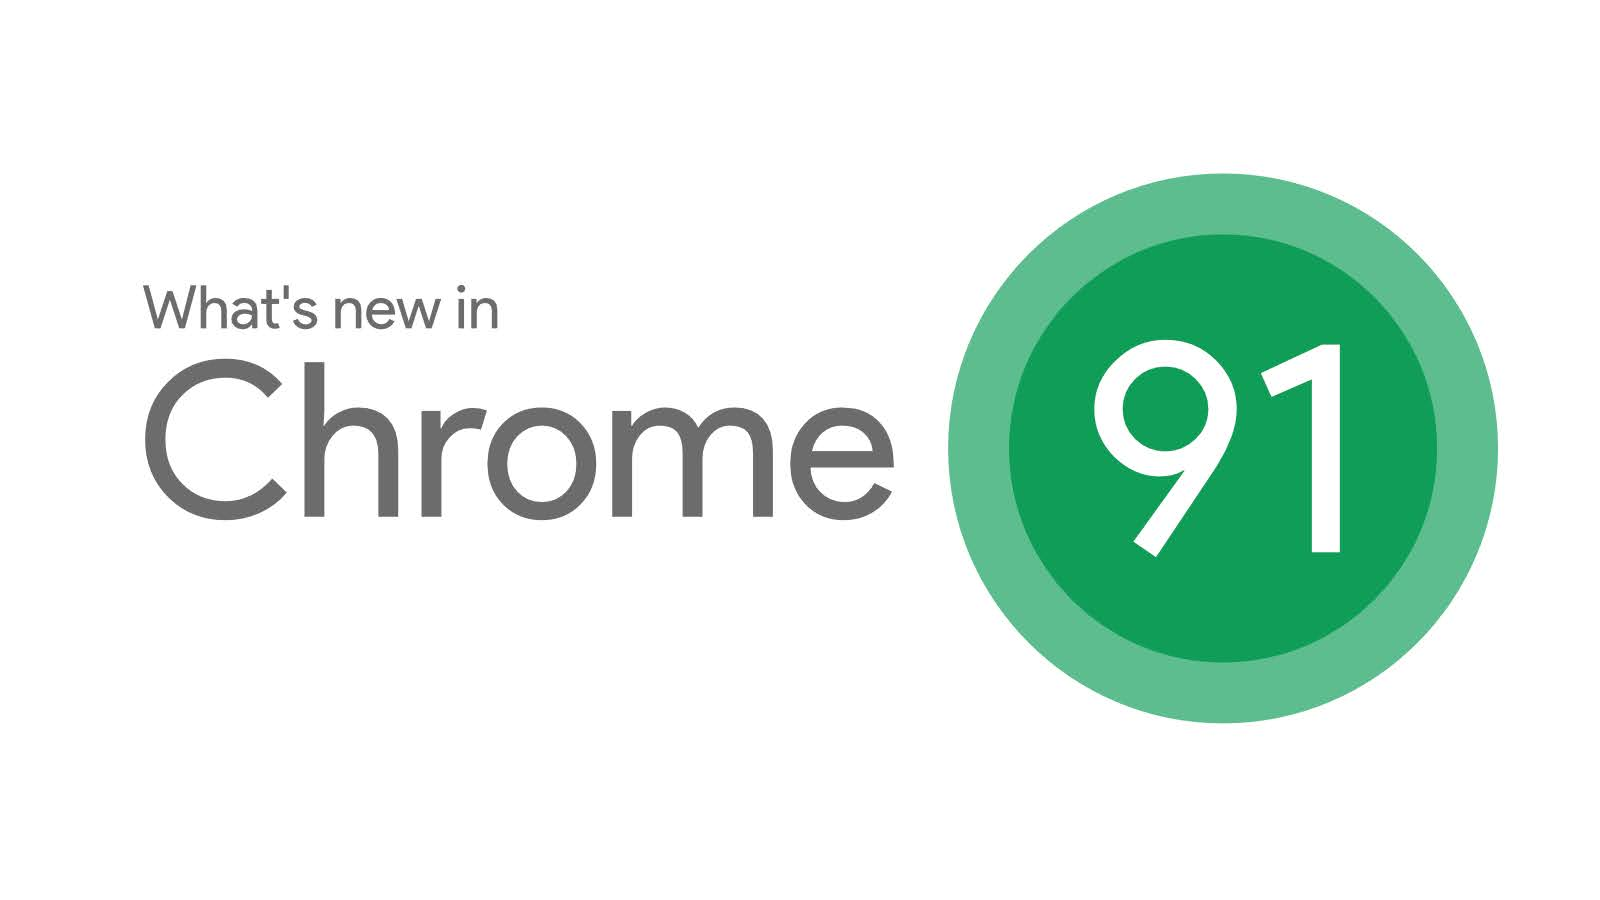 Chrome 91 introduces new protections against downloading malicious extensions and files